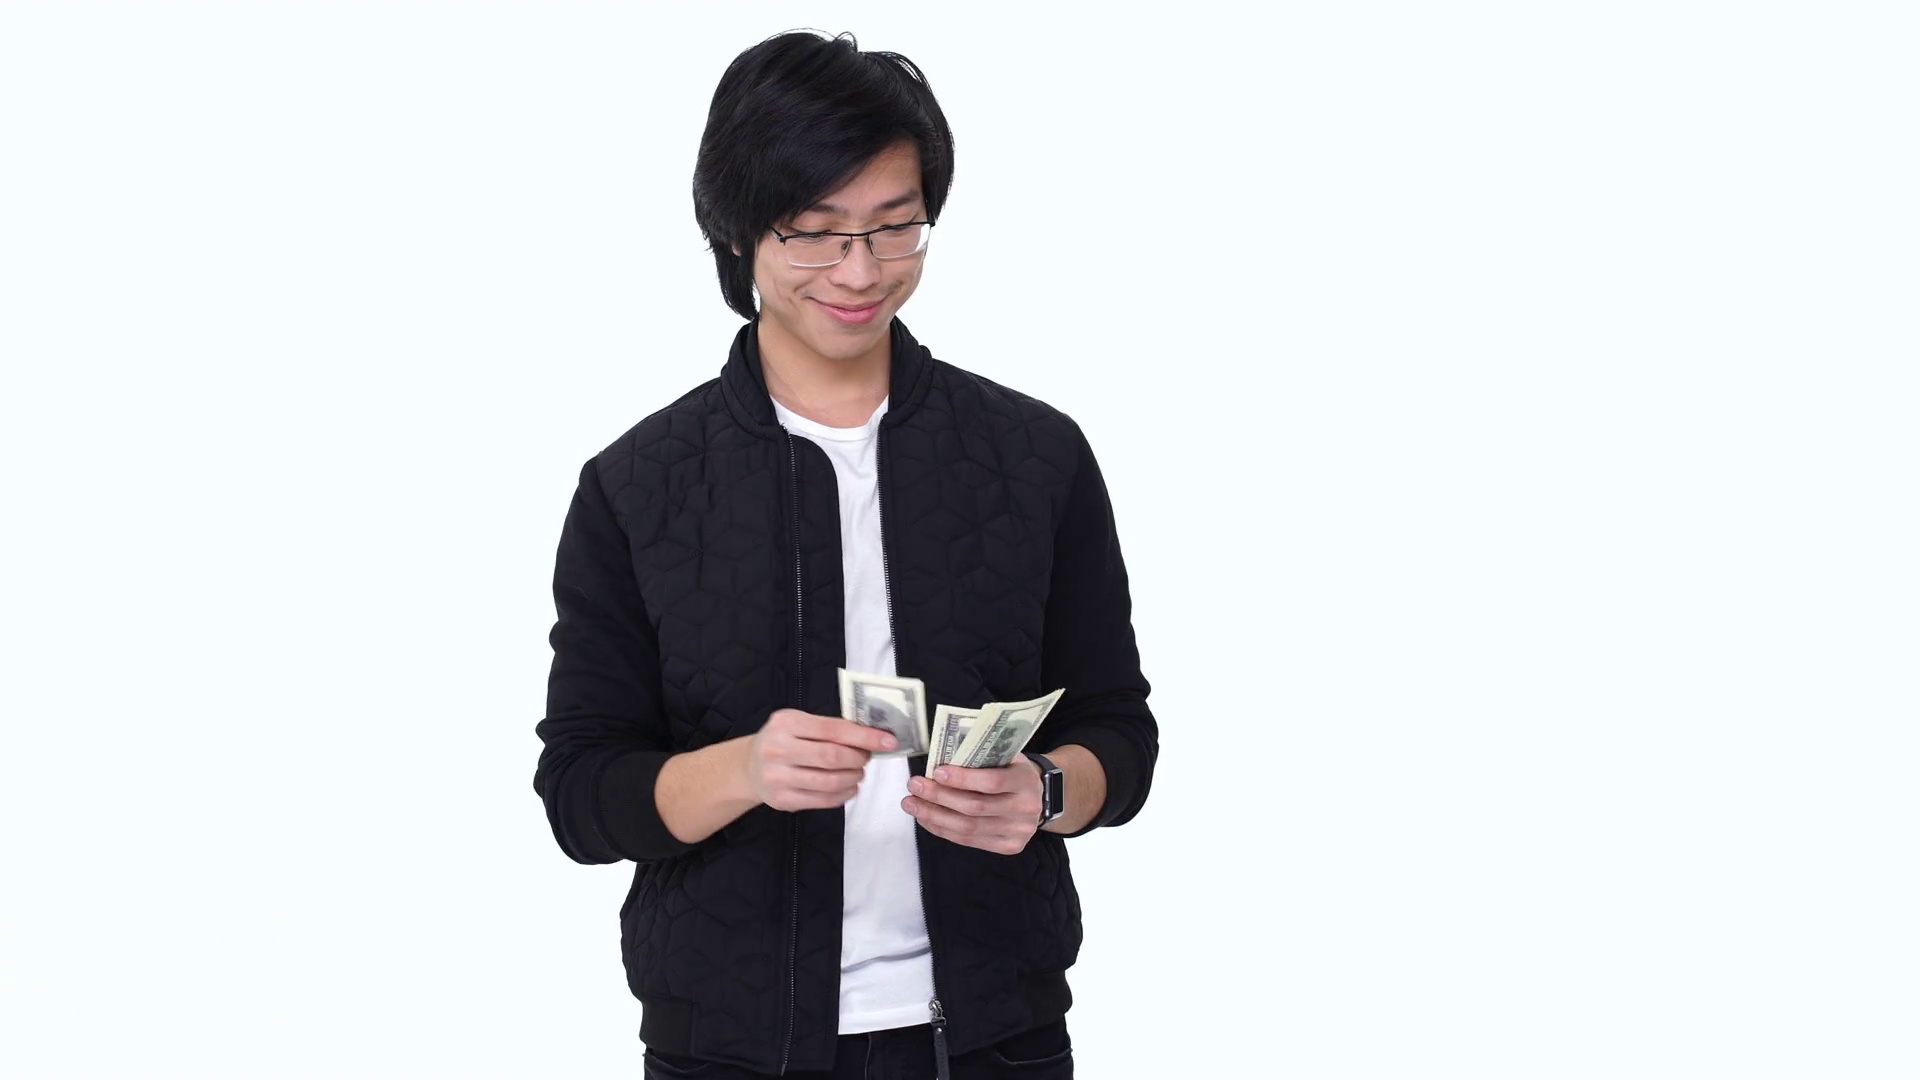 Happy Satisfied Casual Asian Man Counting Money Banknotes And Showing  Thumbs Up Gesture Isolated Over White Stock Video Footage - VideoBlocks - Asian Guy PNG